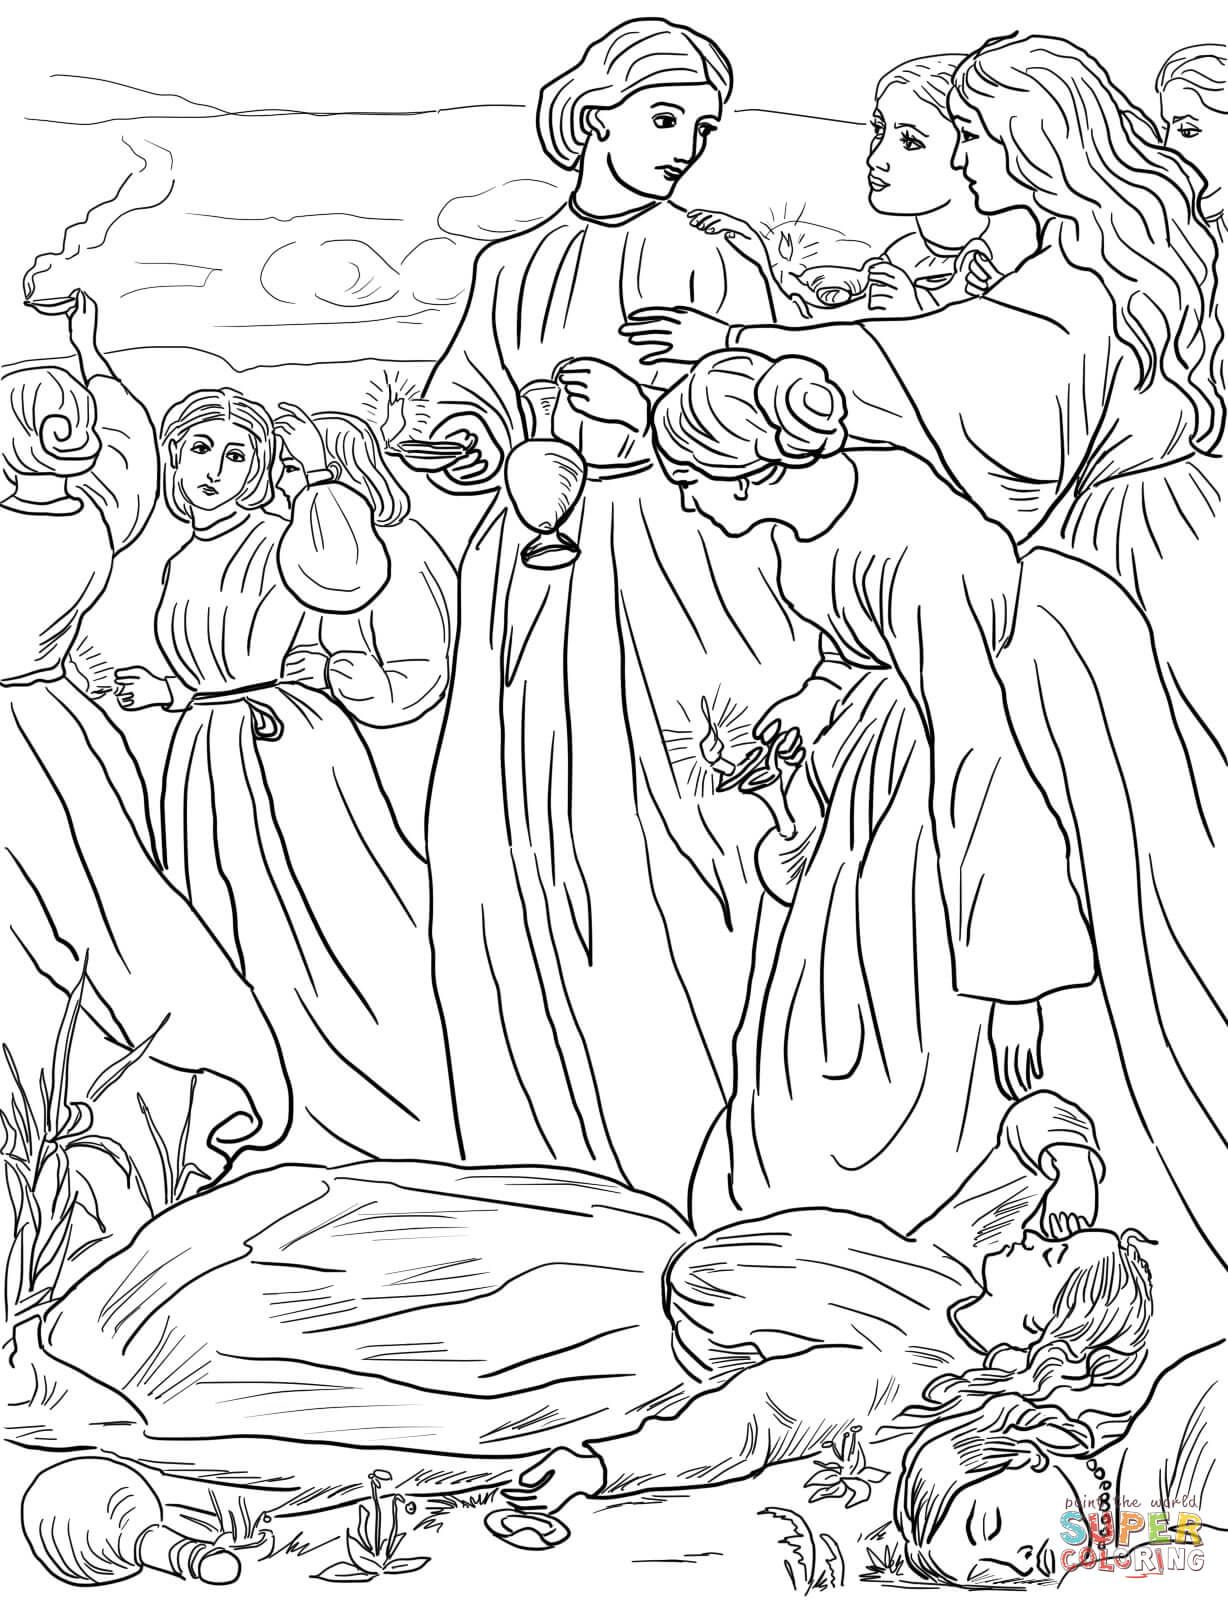 Ten Virgins Parable coloring page from Jesus\' parables category ...